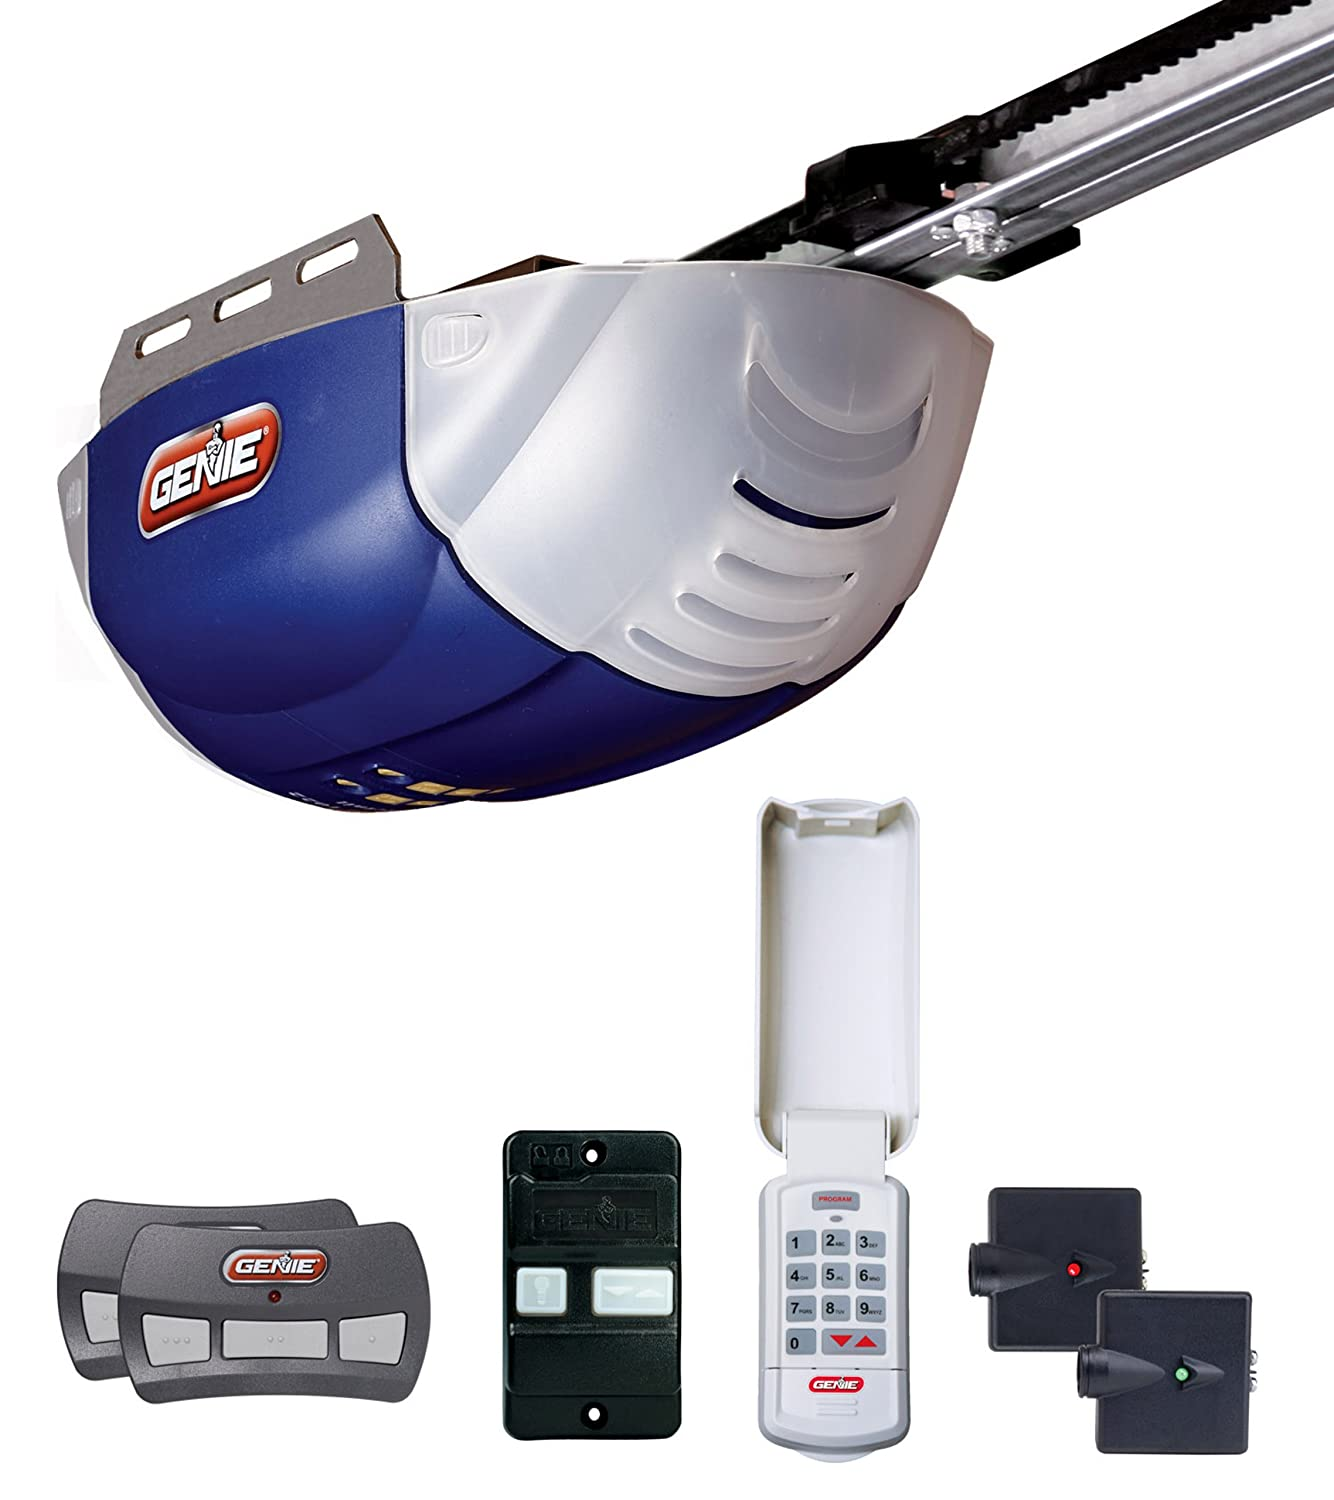 Quietest garage door opener